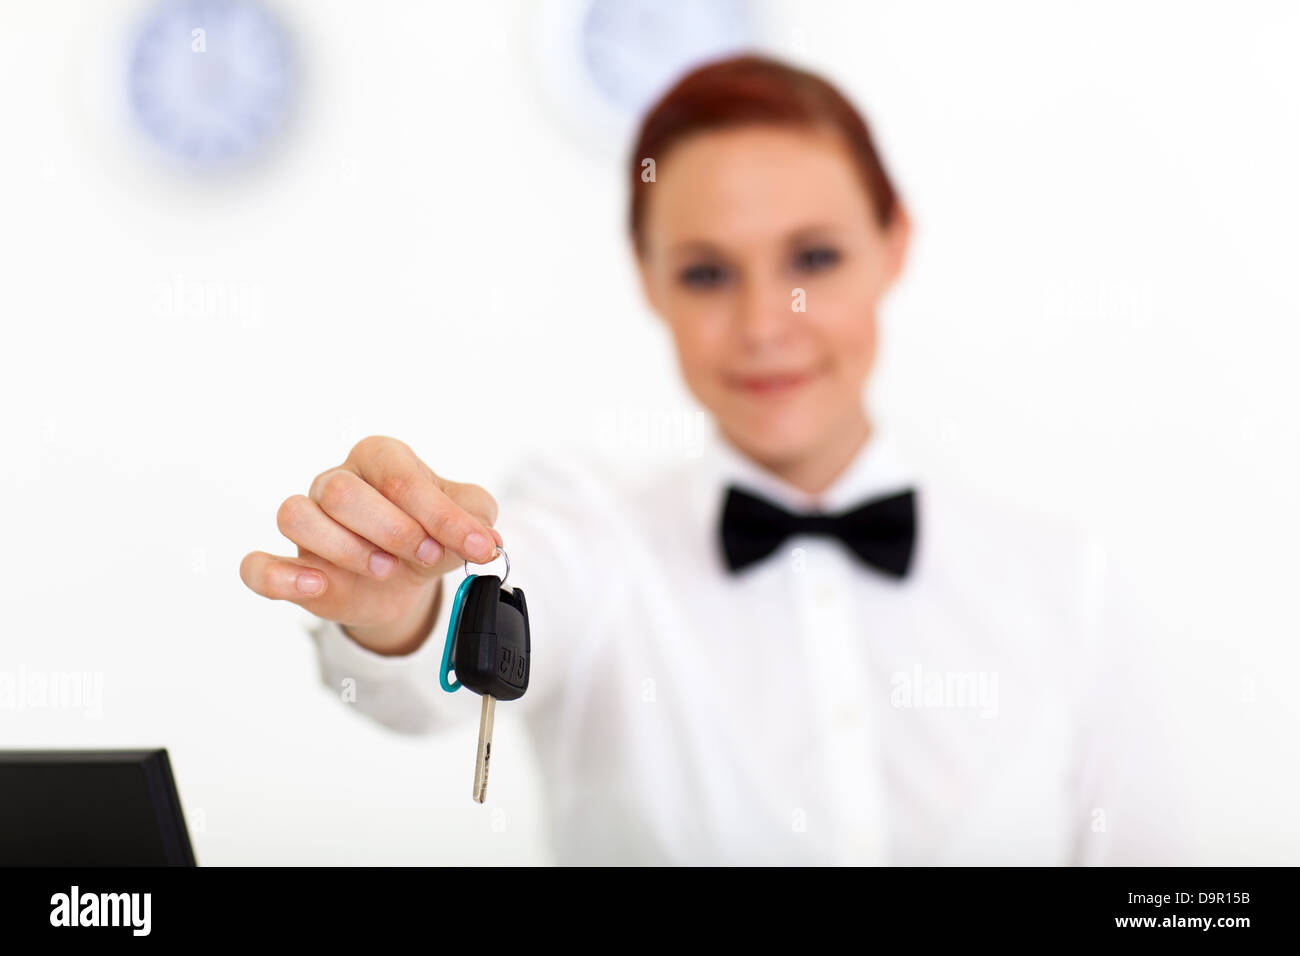 car rental company employee hand over car key to client Stock Photo